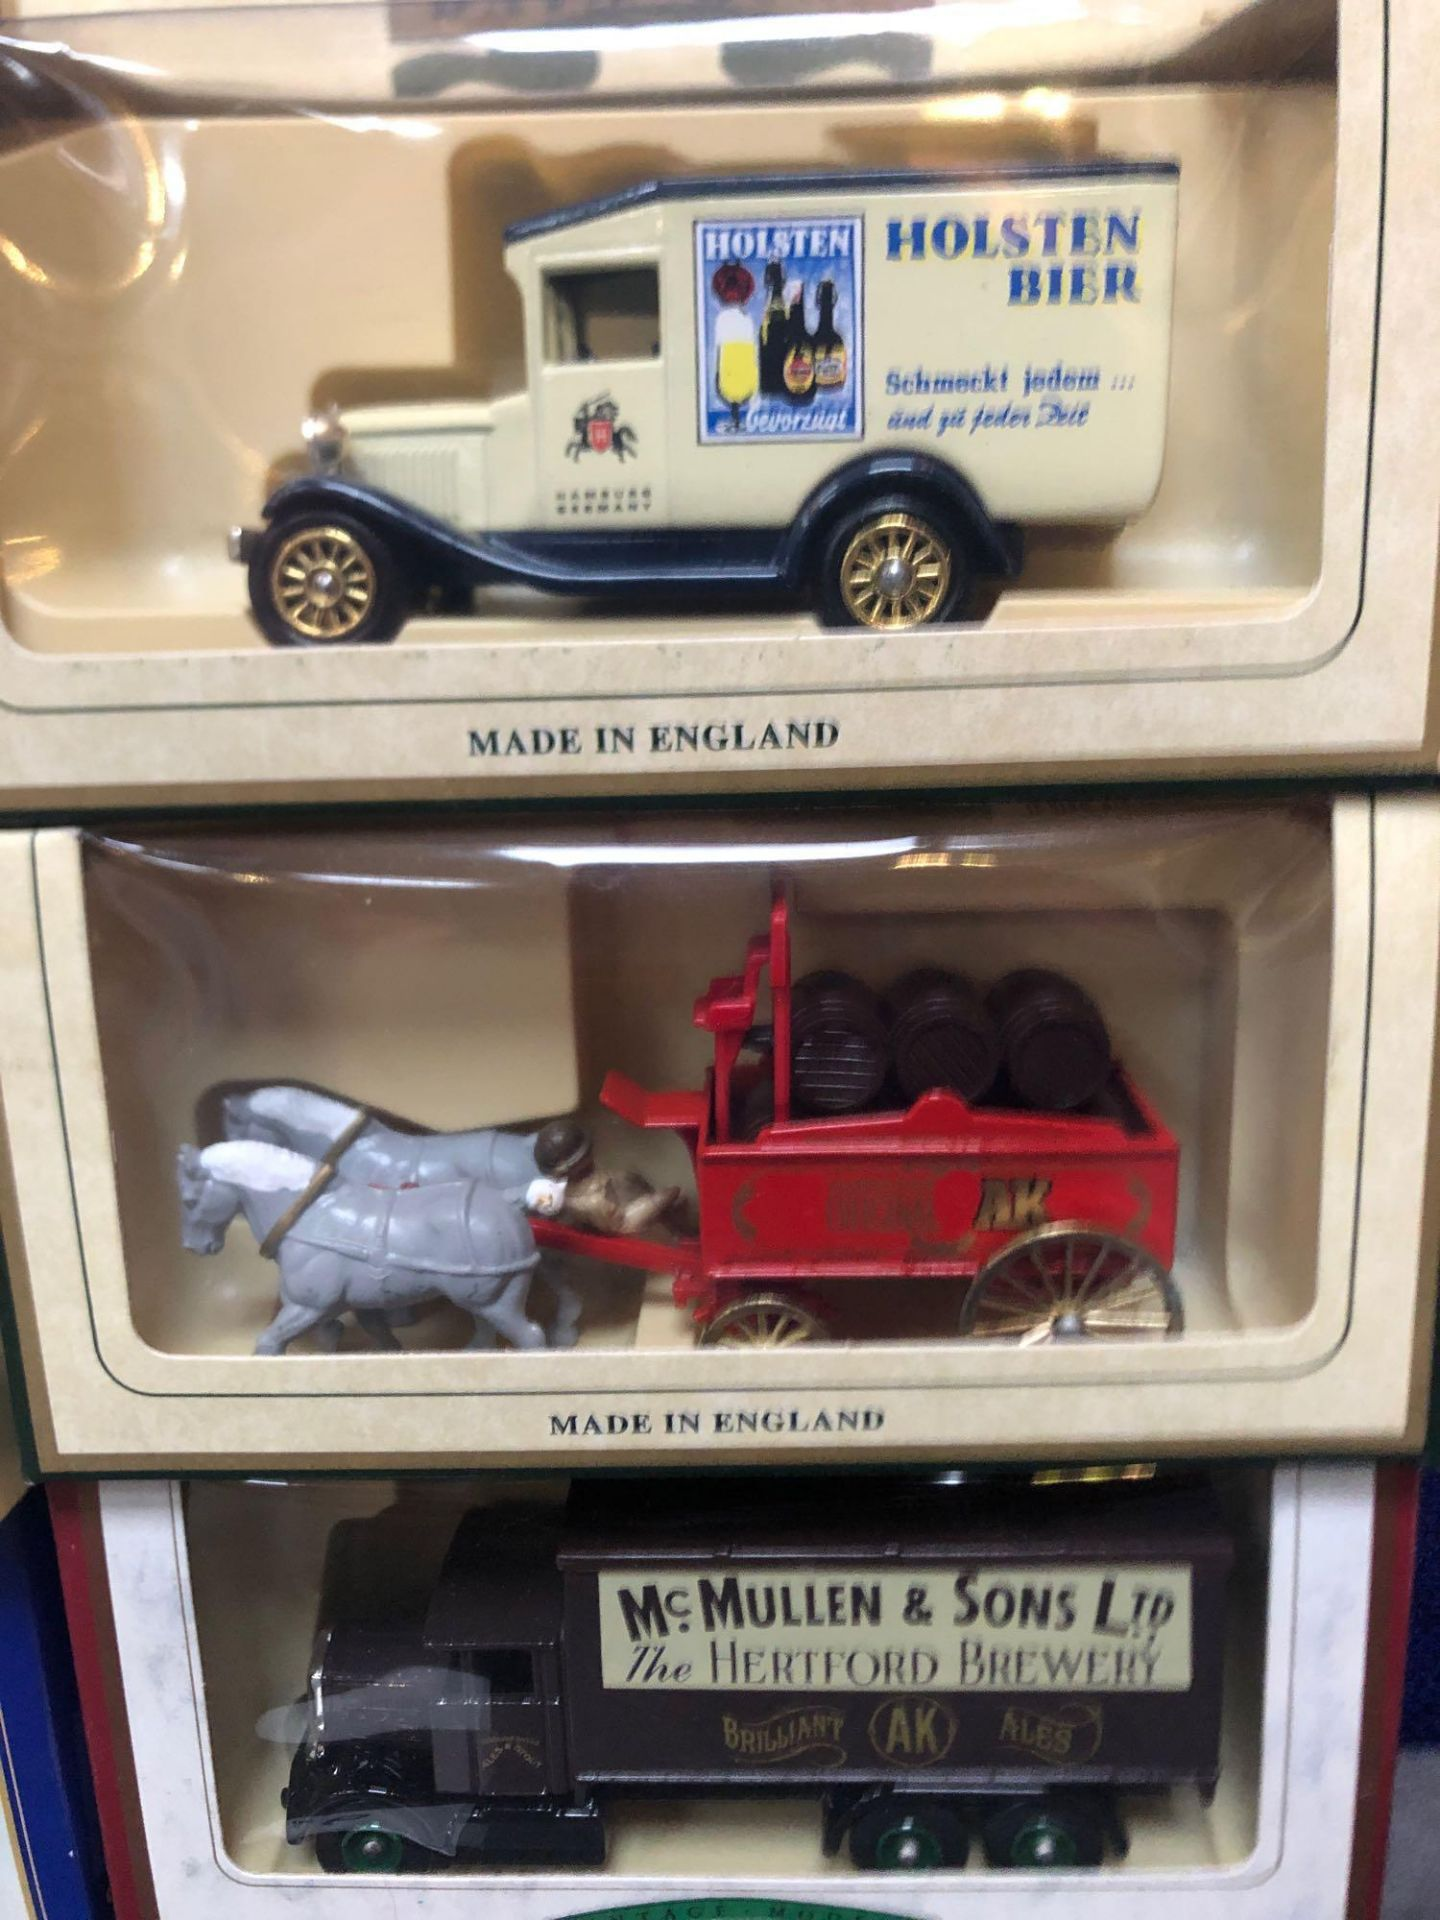 9x Diecast Vehicles All Advertising Alcohol With Individual Boxes - Image 4 of 4